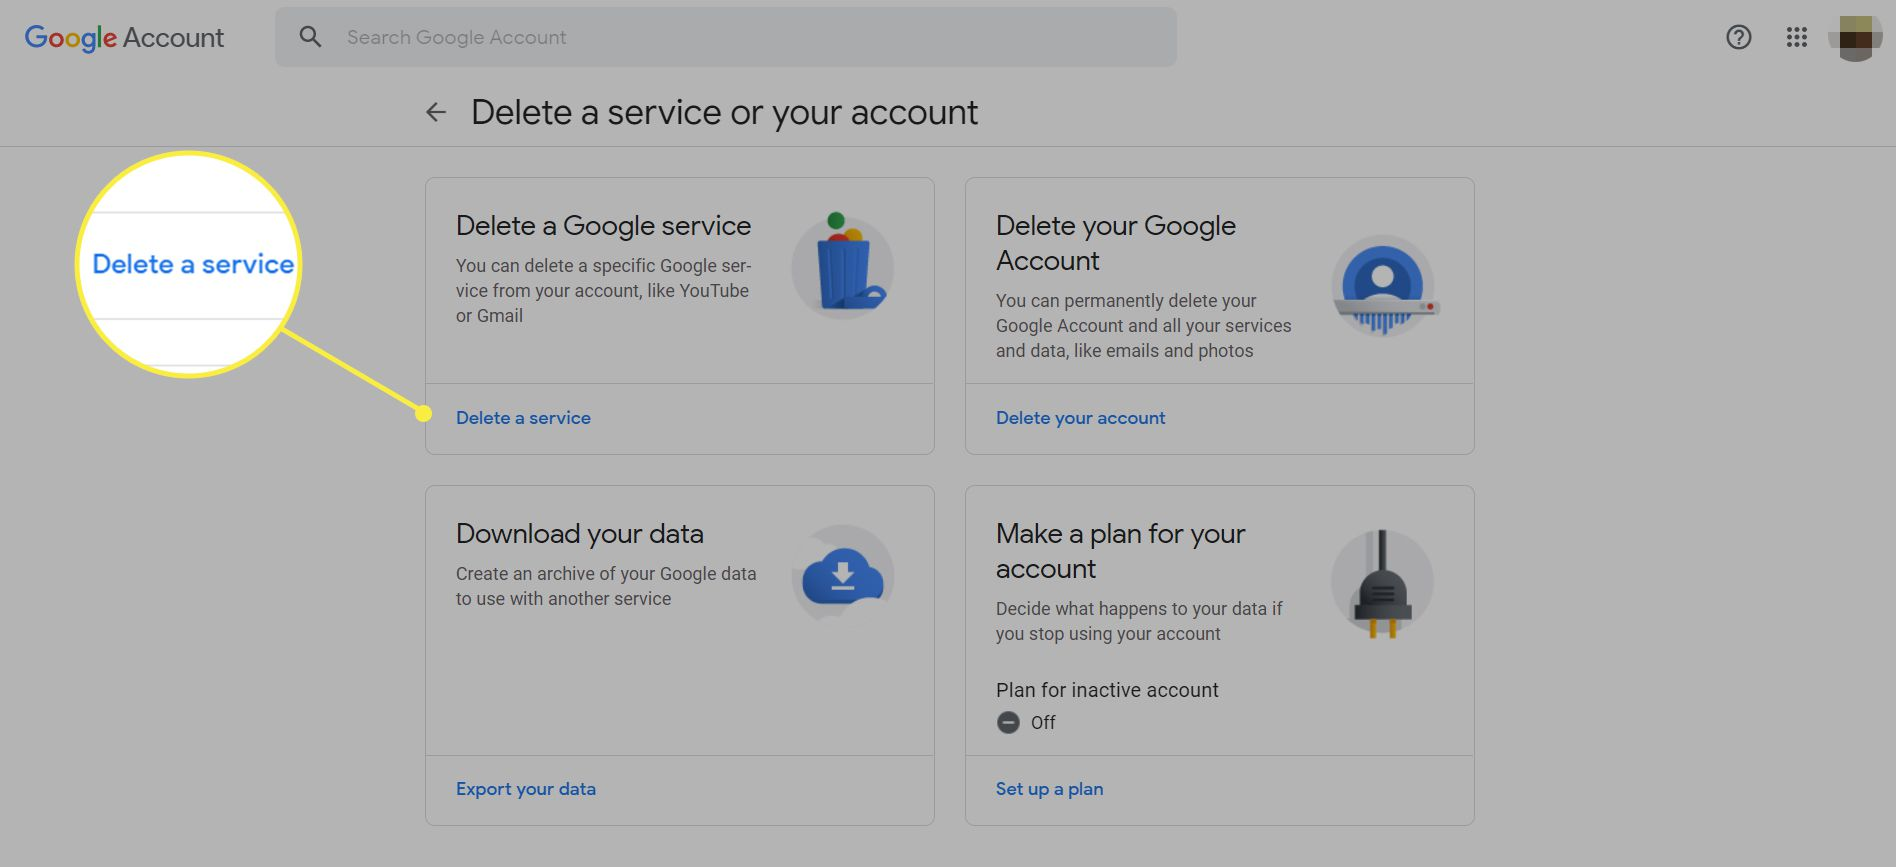 The Google Delete a service or your account page with 'Delete a service' highlighted